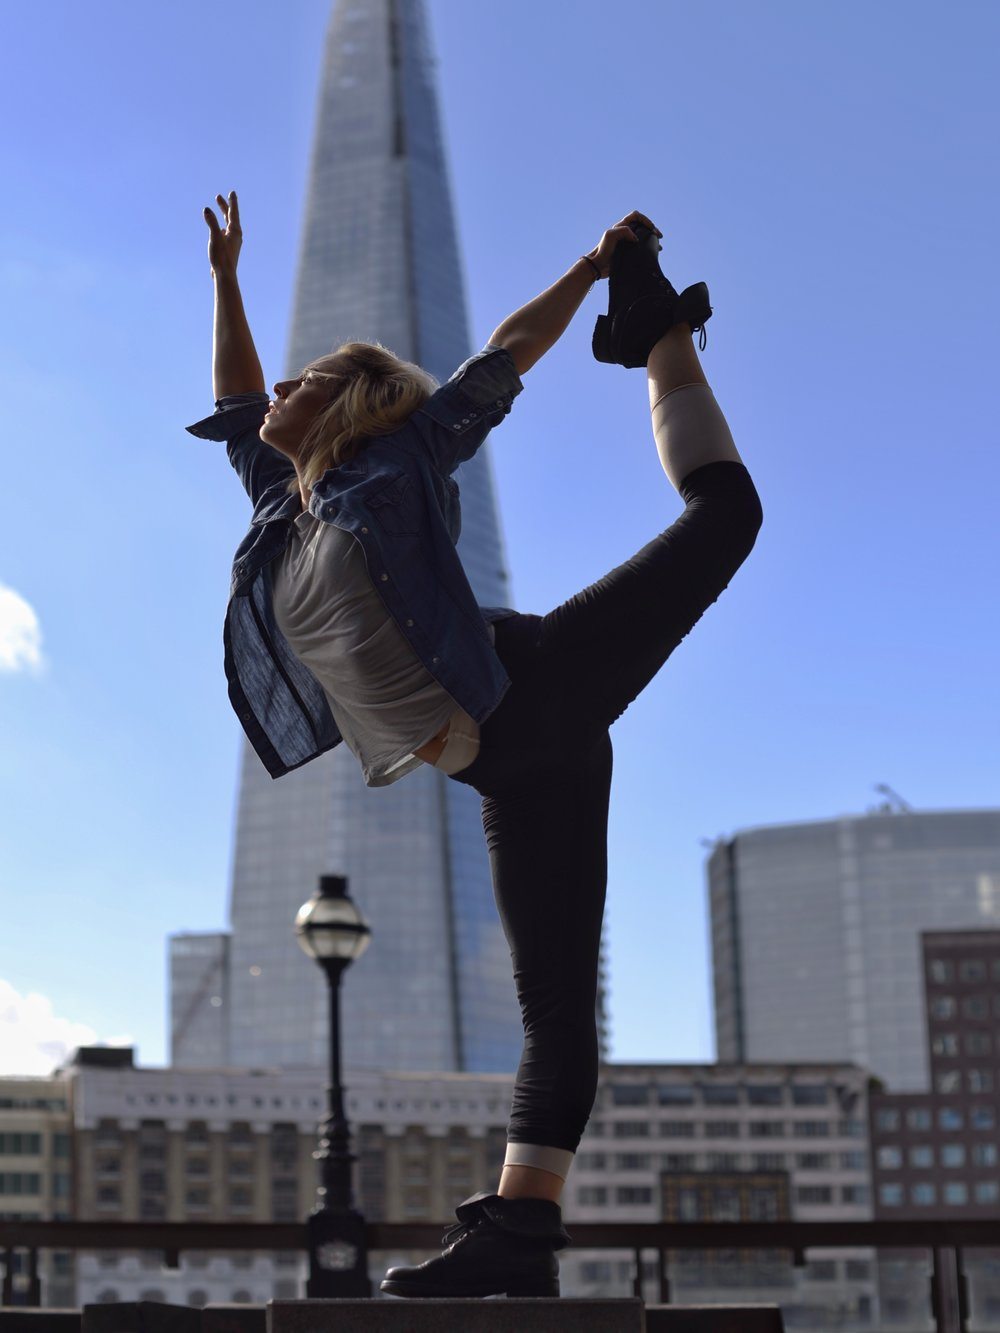 DREAMS   ⫩  Lower Thames Street, The City of London. The Shard, highest building in London, is in the background seen across the river Thames.  Dancer:   Ana Badea